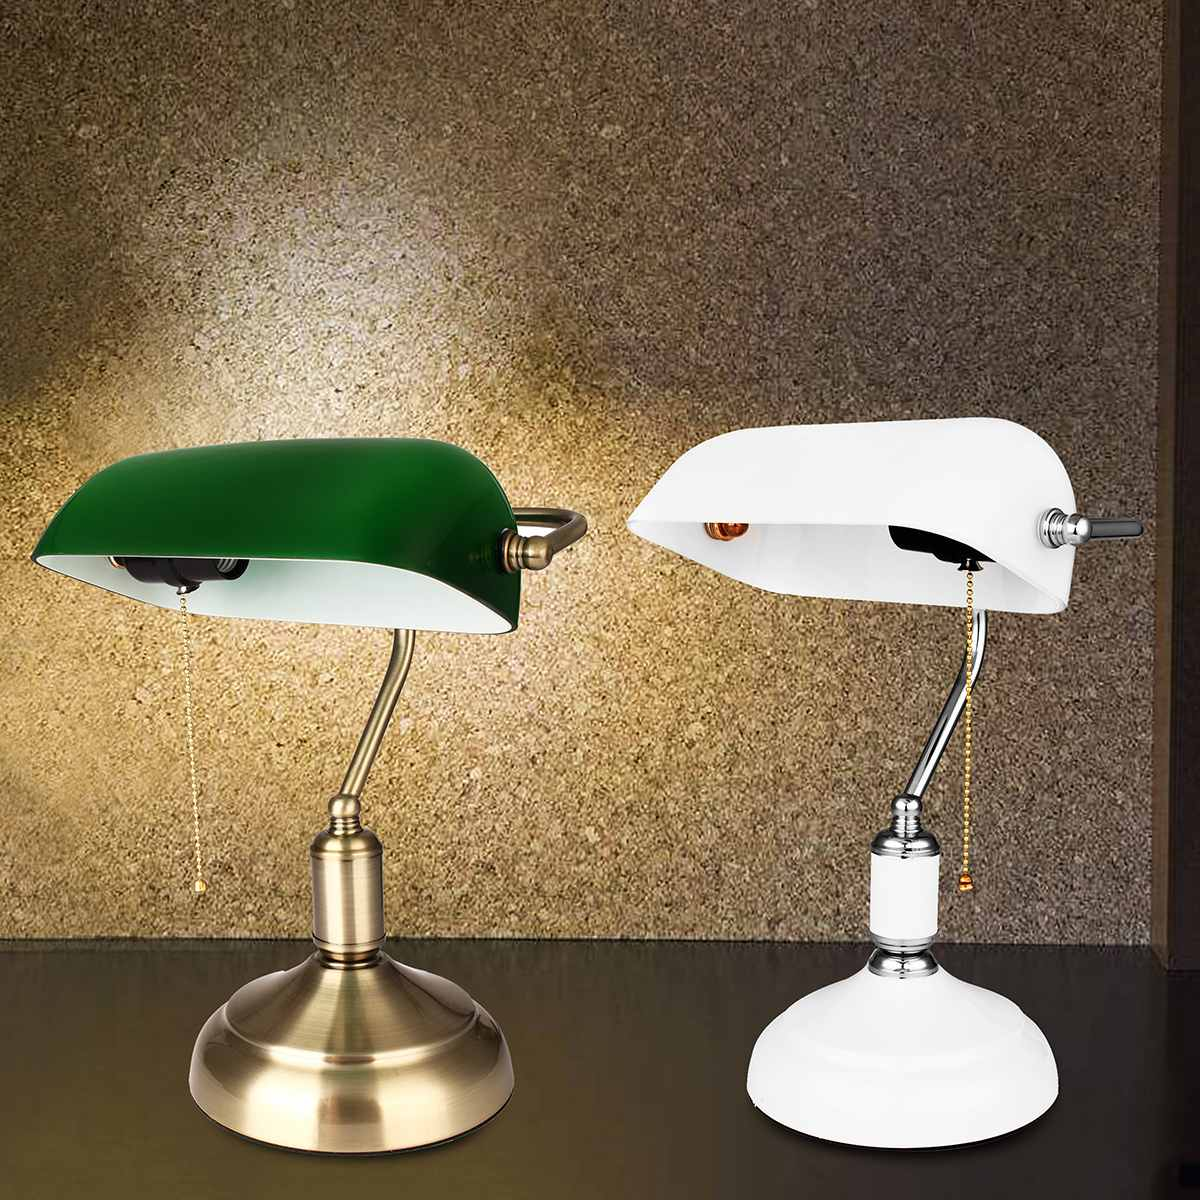 Green Bankers Table Office Desk Lamp